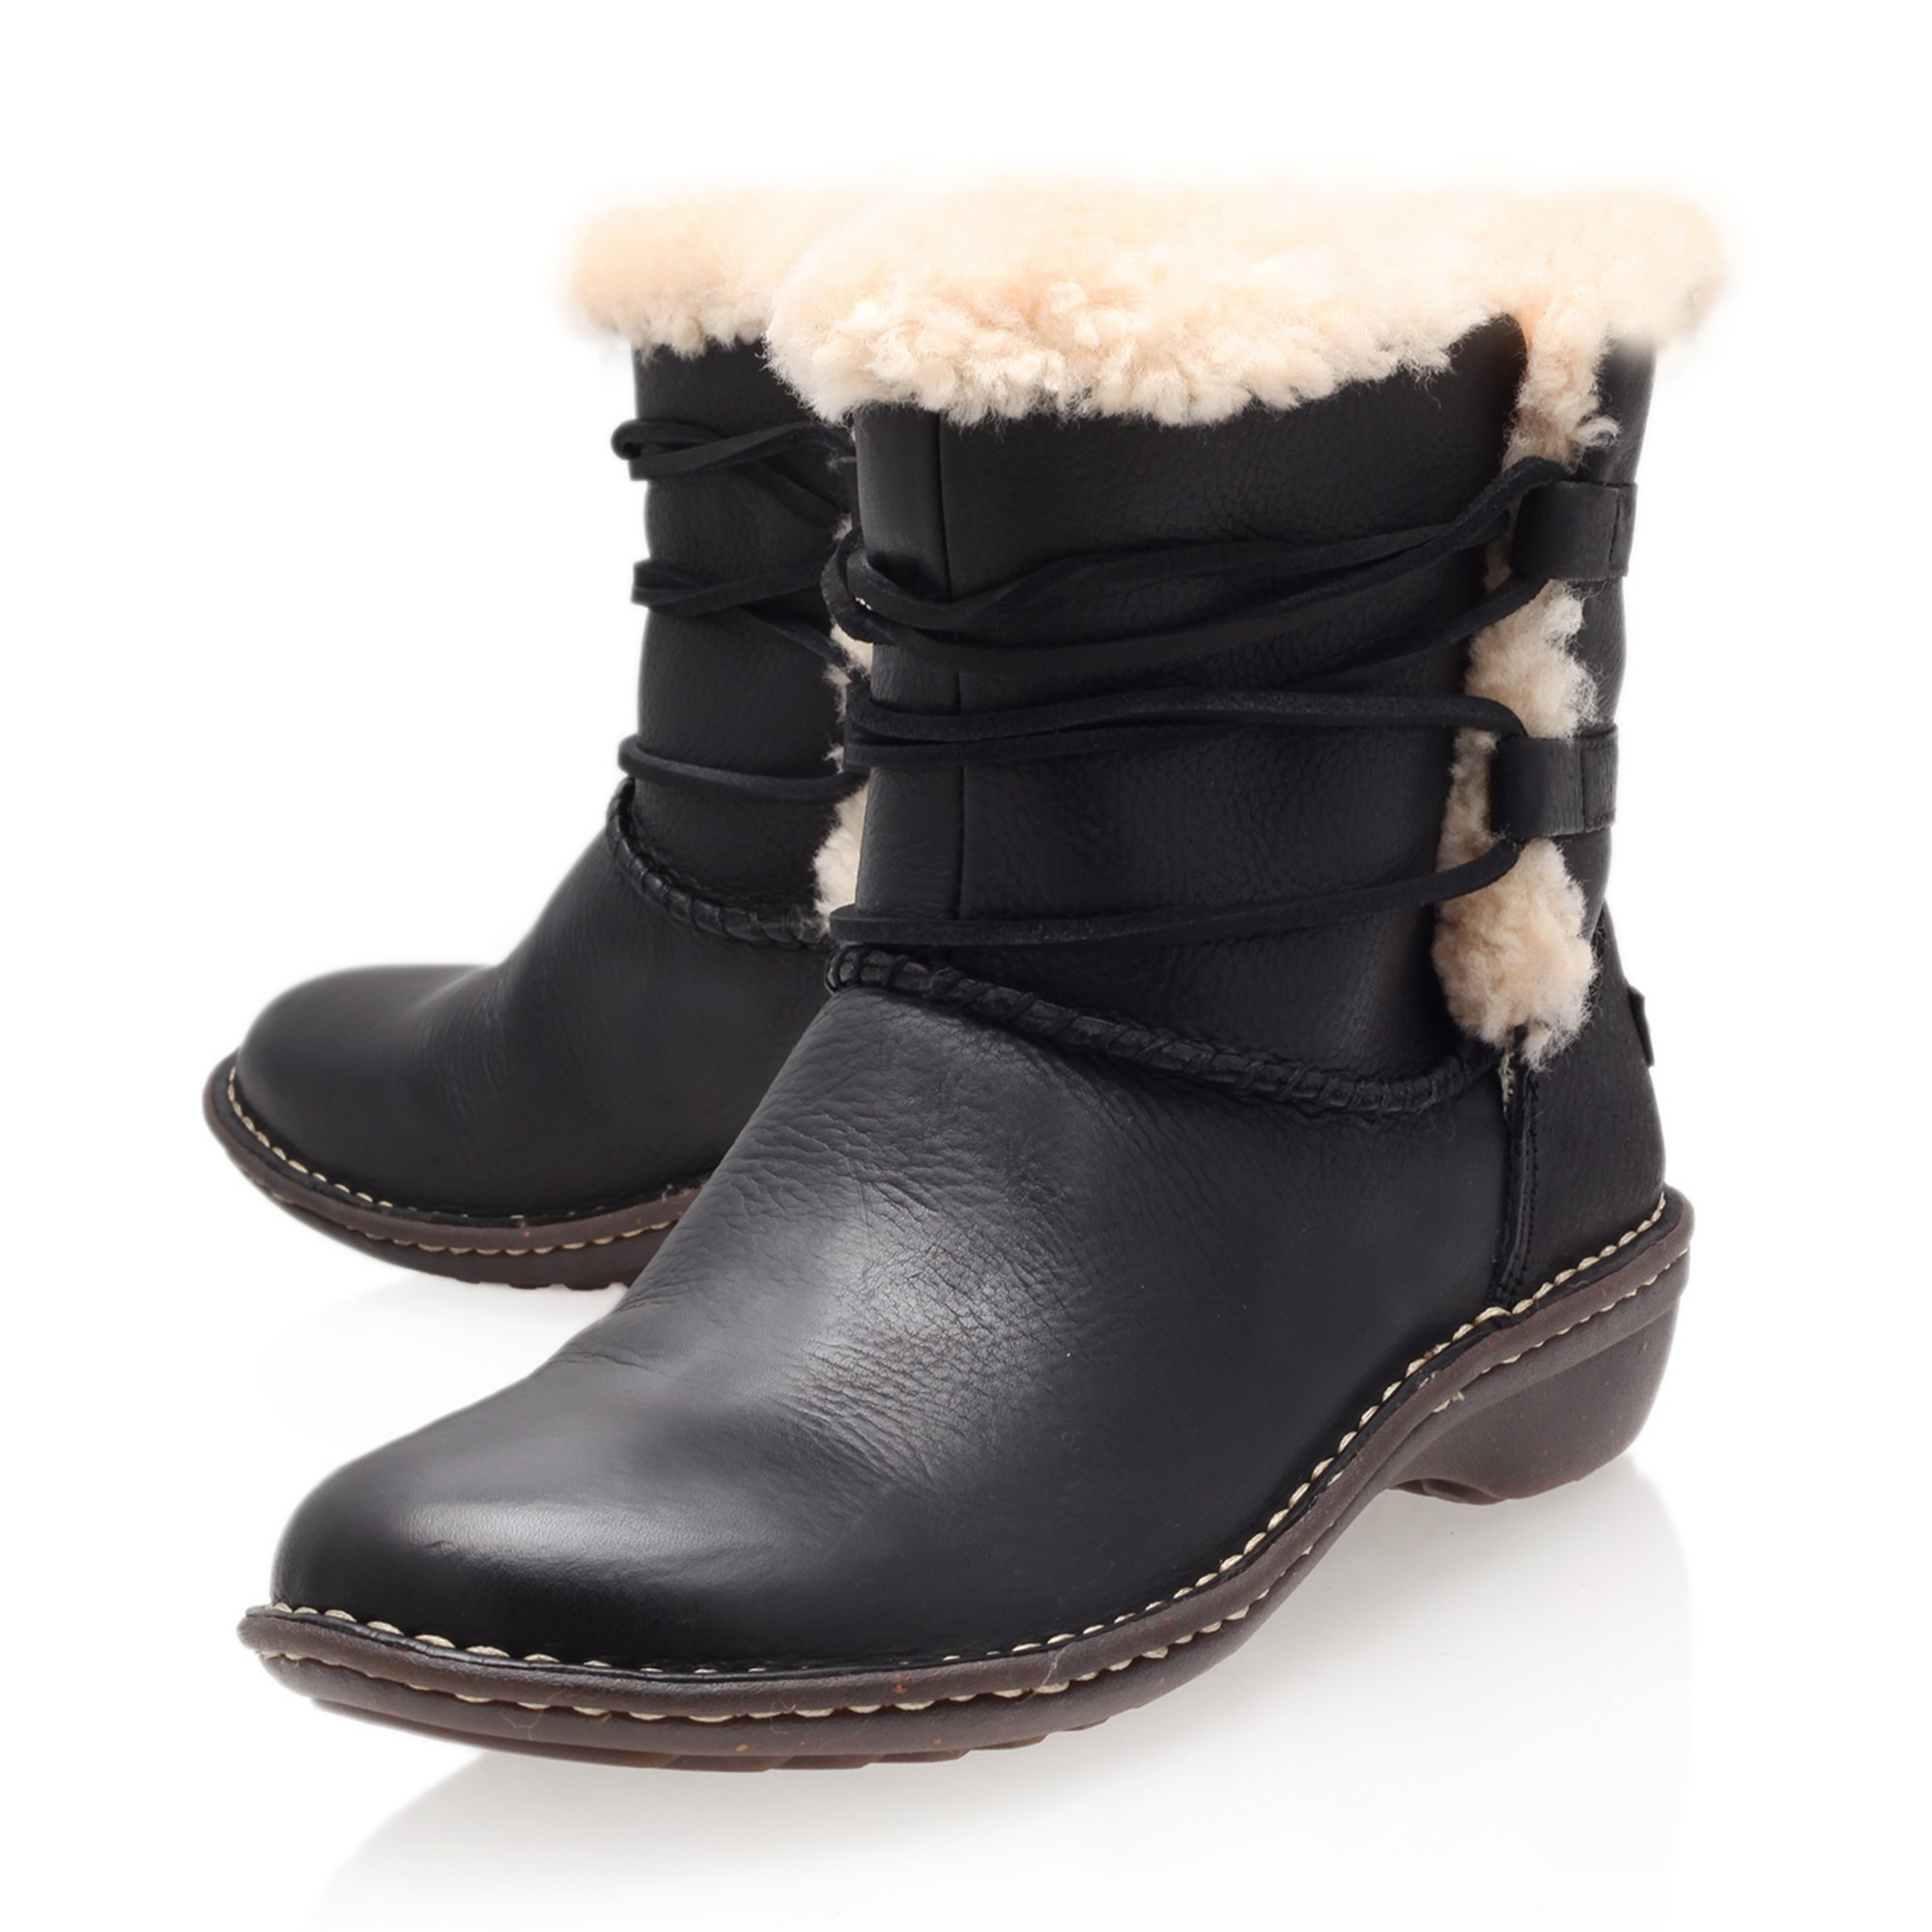 a3f19a5b82f Rianne Ugg Boots House Of Fraser - cheap watches mgc-gas.com